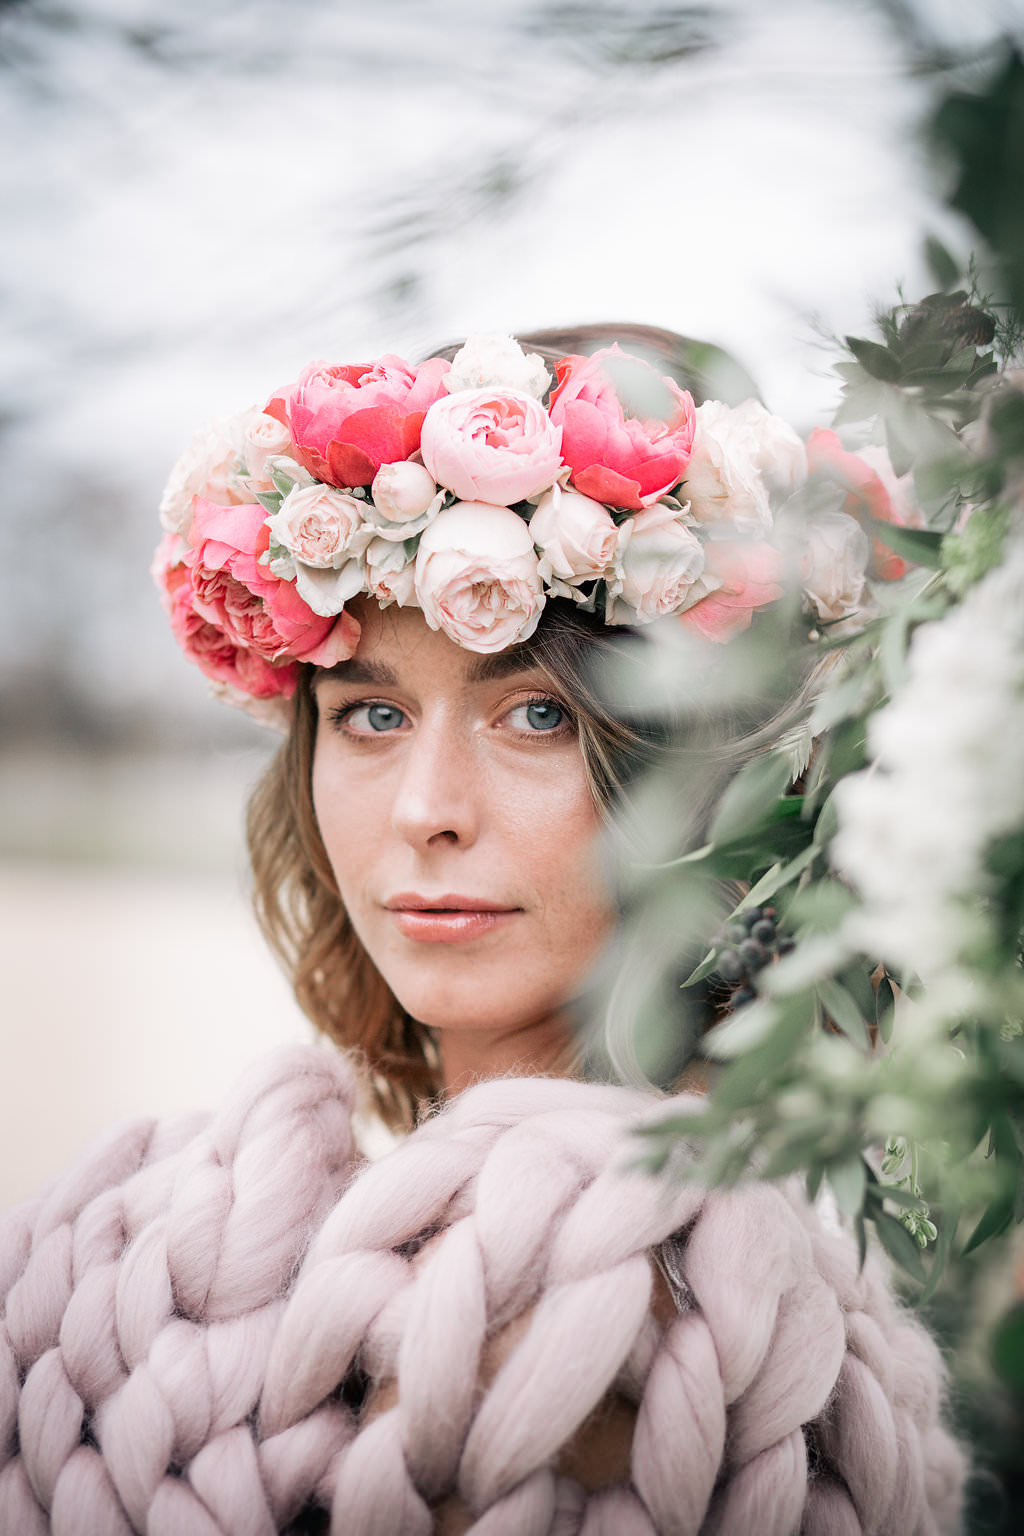 Flower Crown Bride Bridal Pink Rose Ranunculus Peony Lapstone Barn Wedding Ideas Cotswolds Katie Hamilton Photography